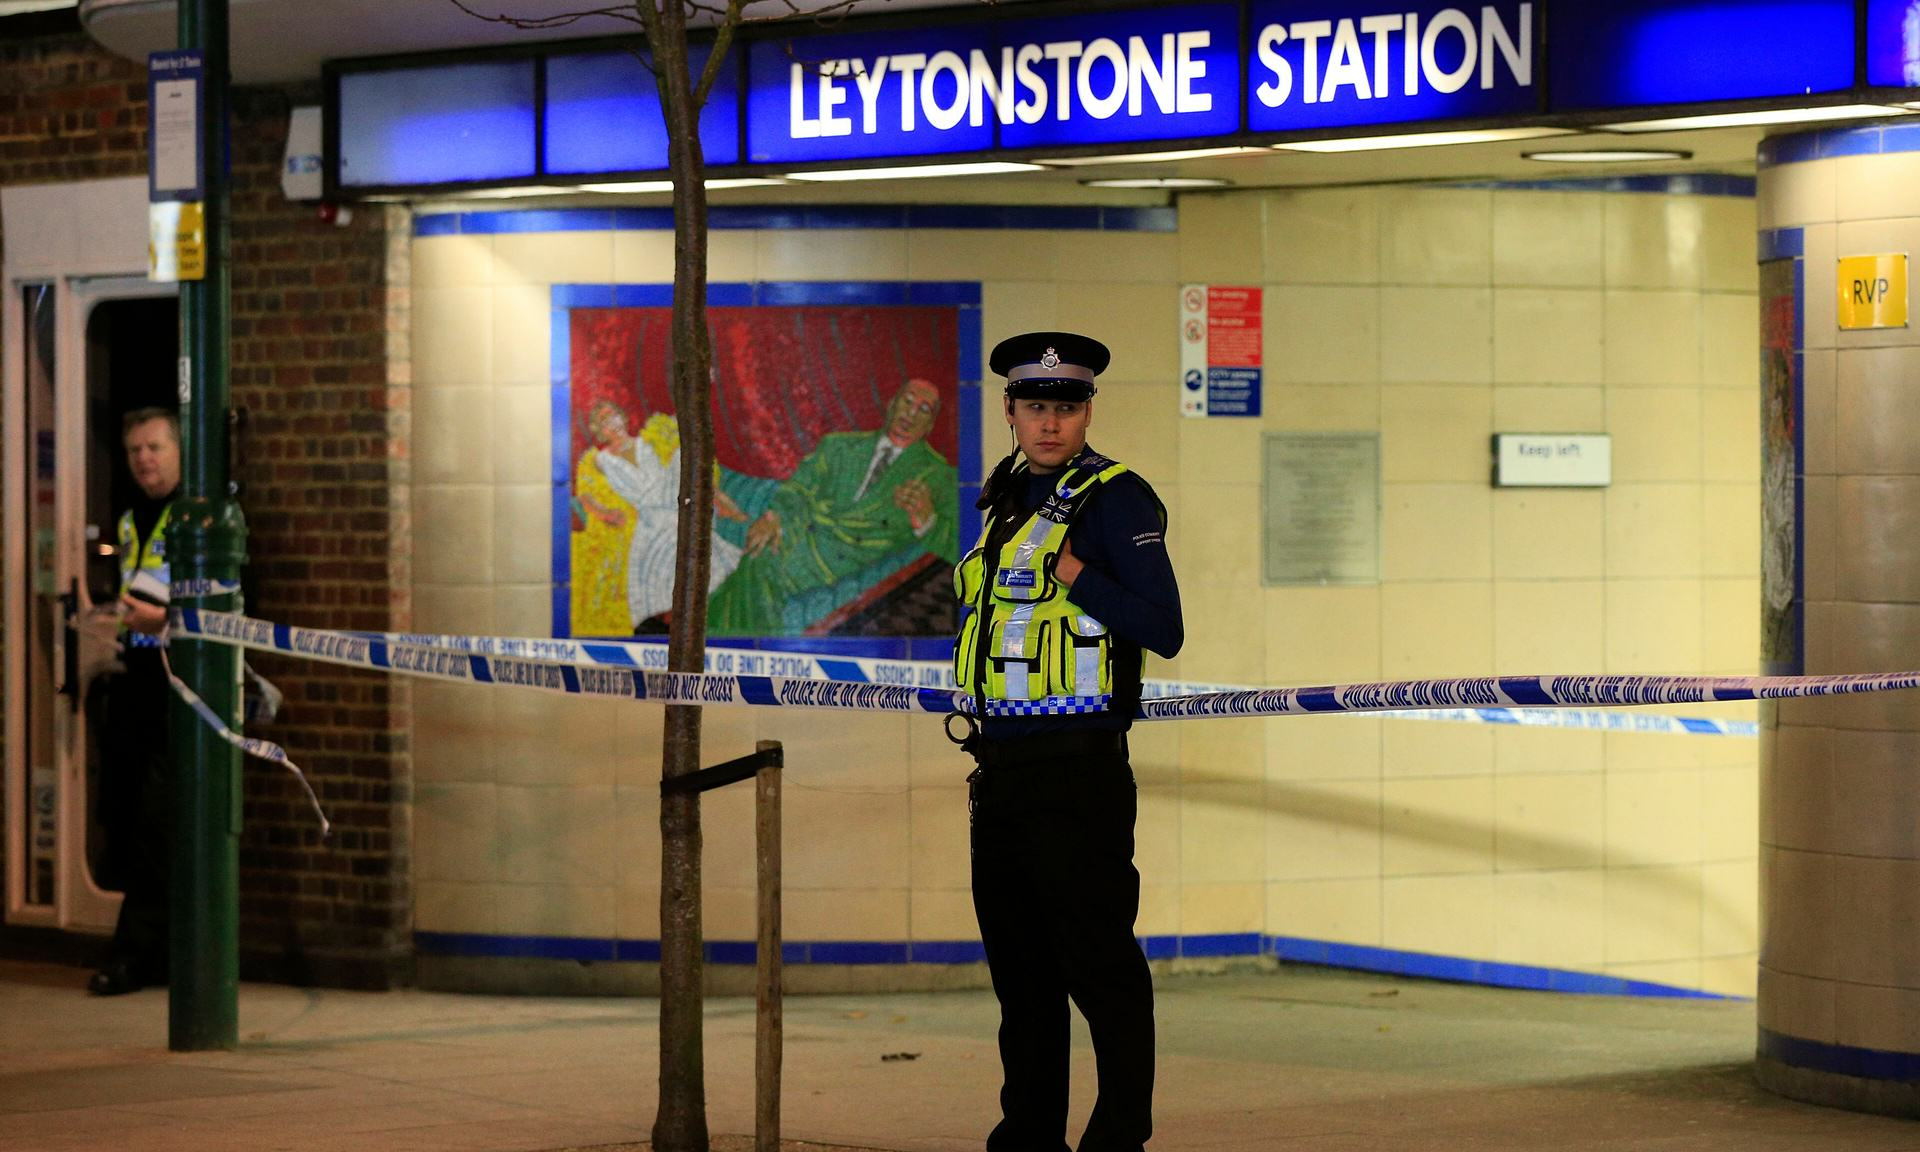 Stabbing At London Tube Station A Terrorist Incident, Police Say 35001